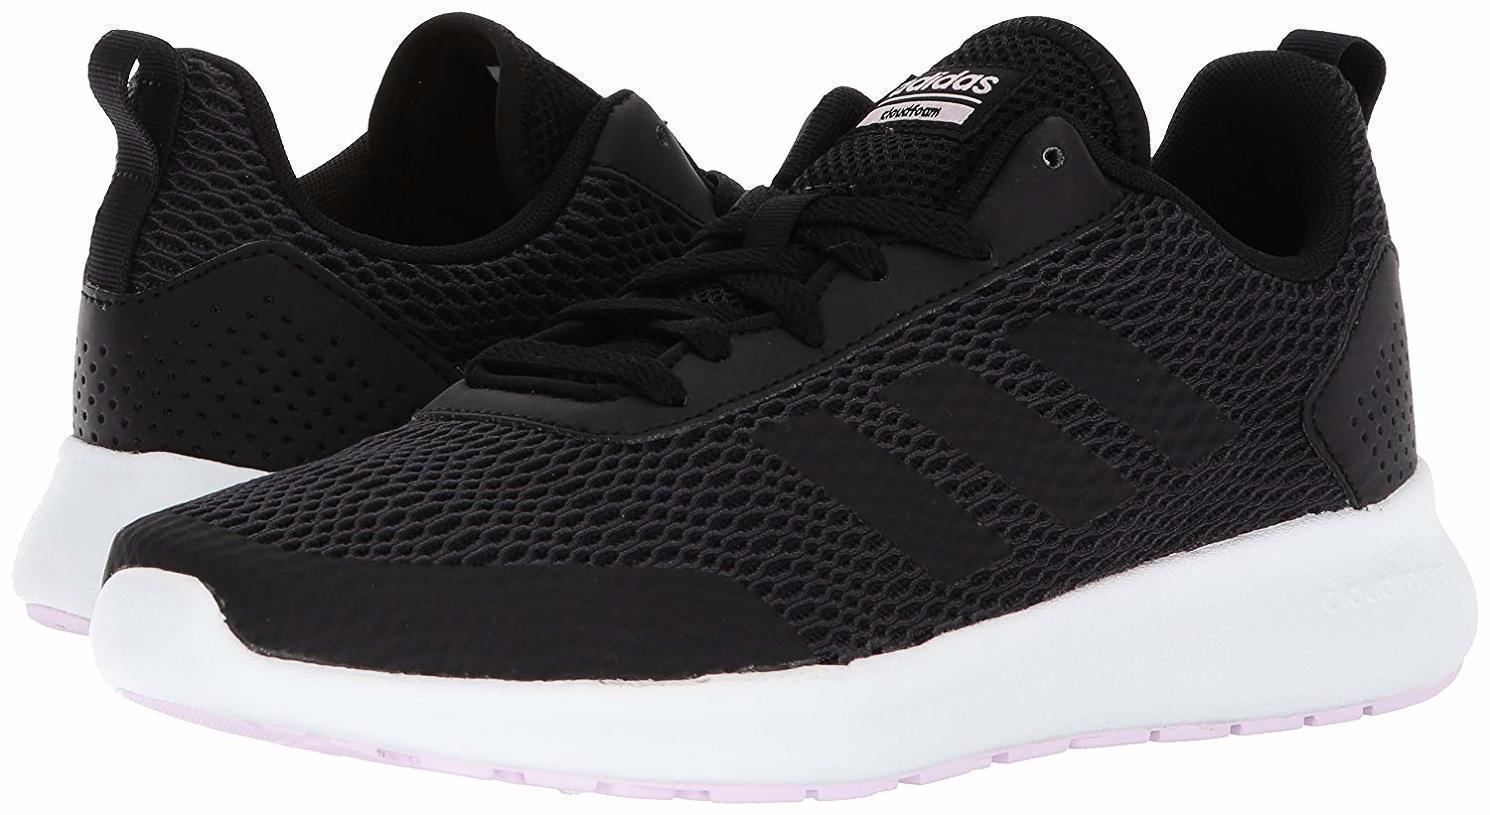 8e267e950f8a Adidas Womens 6 Running Shoes Element Race and 50 similar items. 57